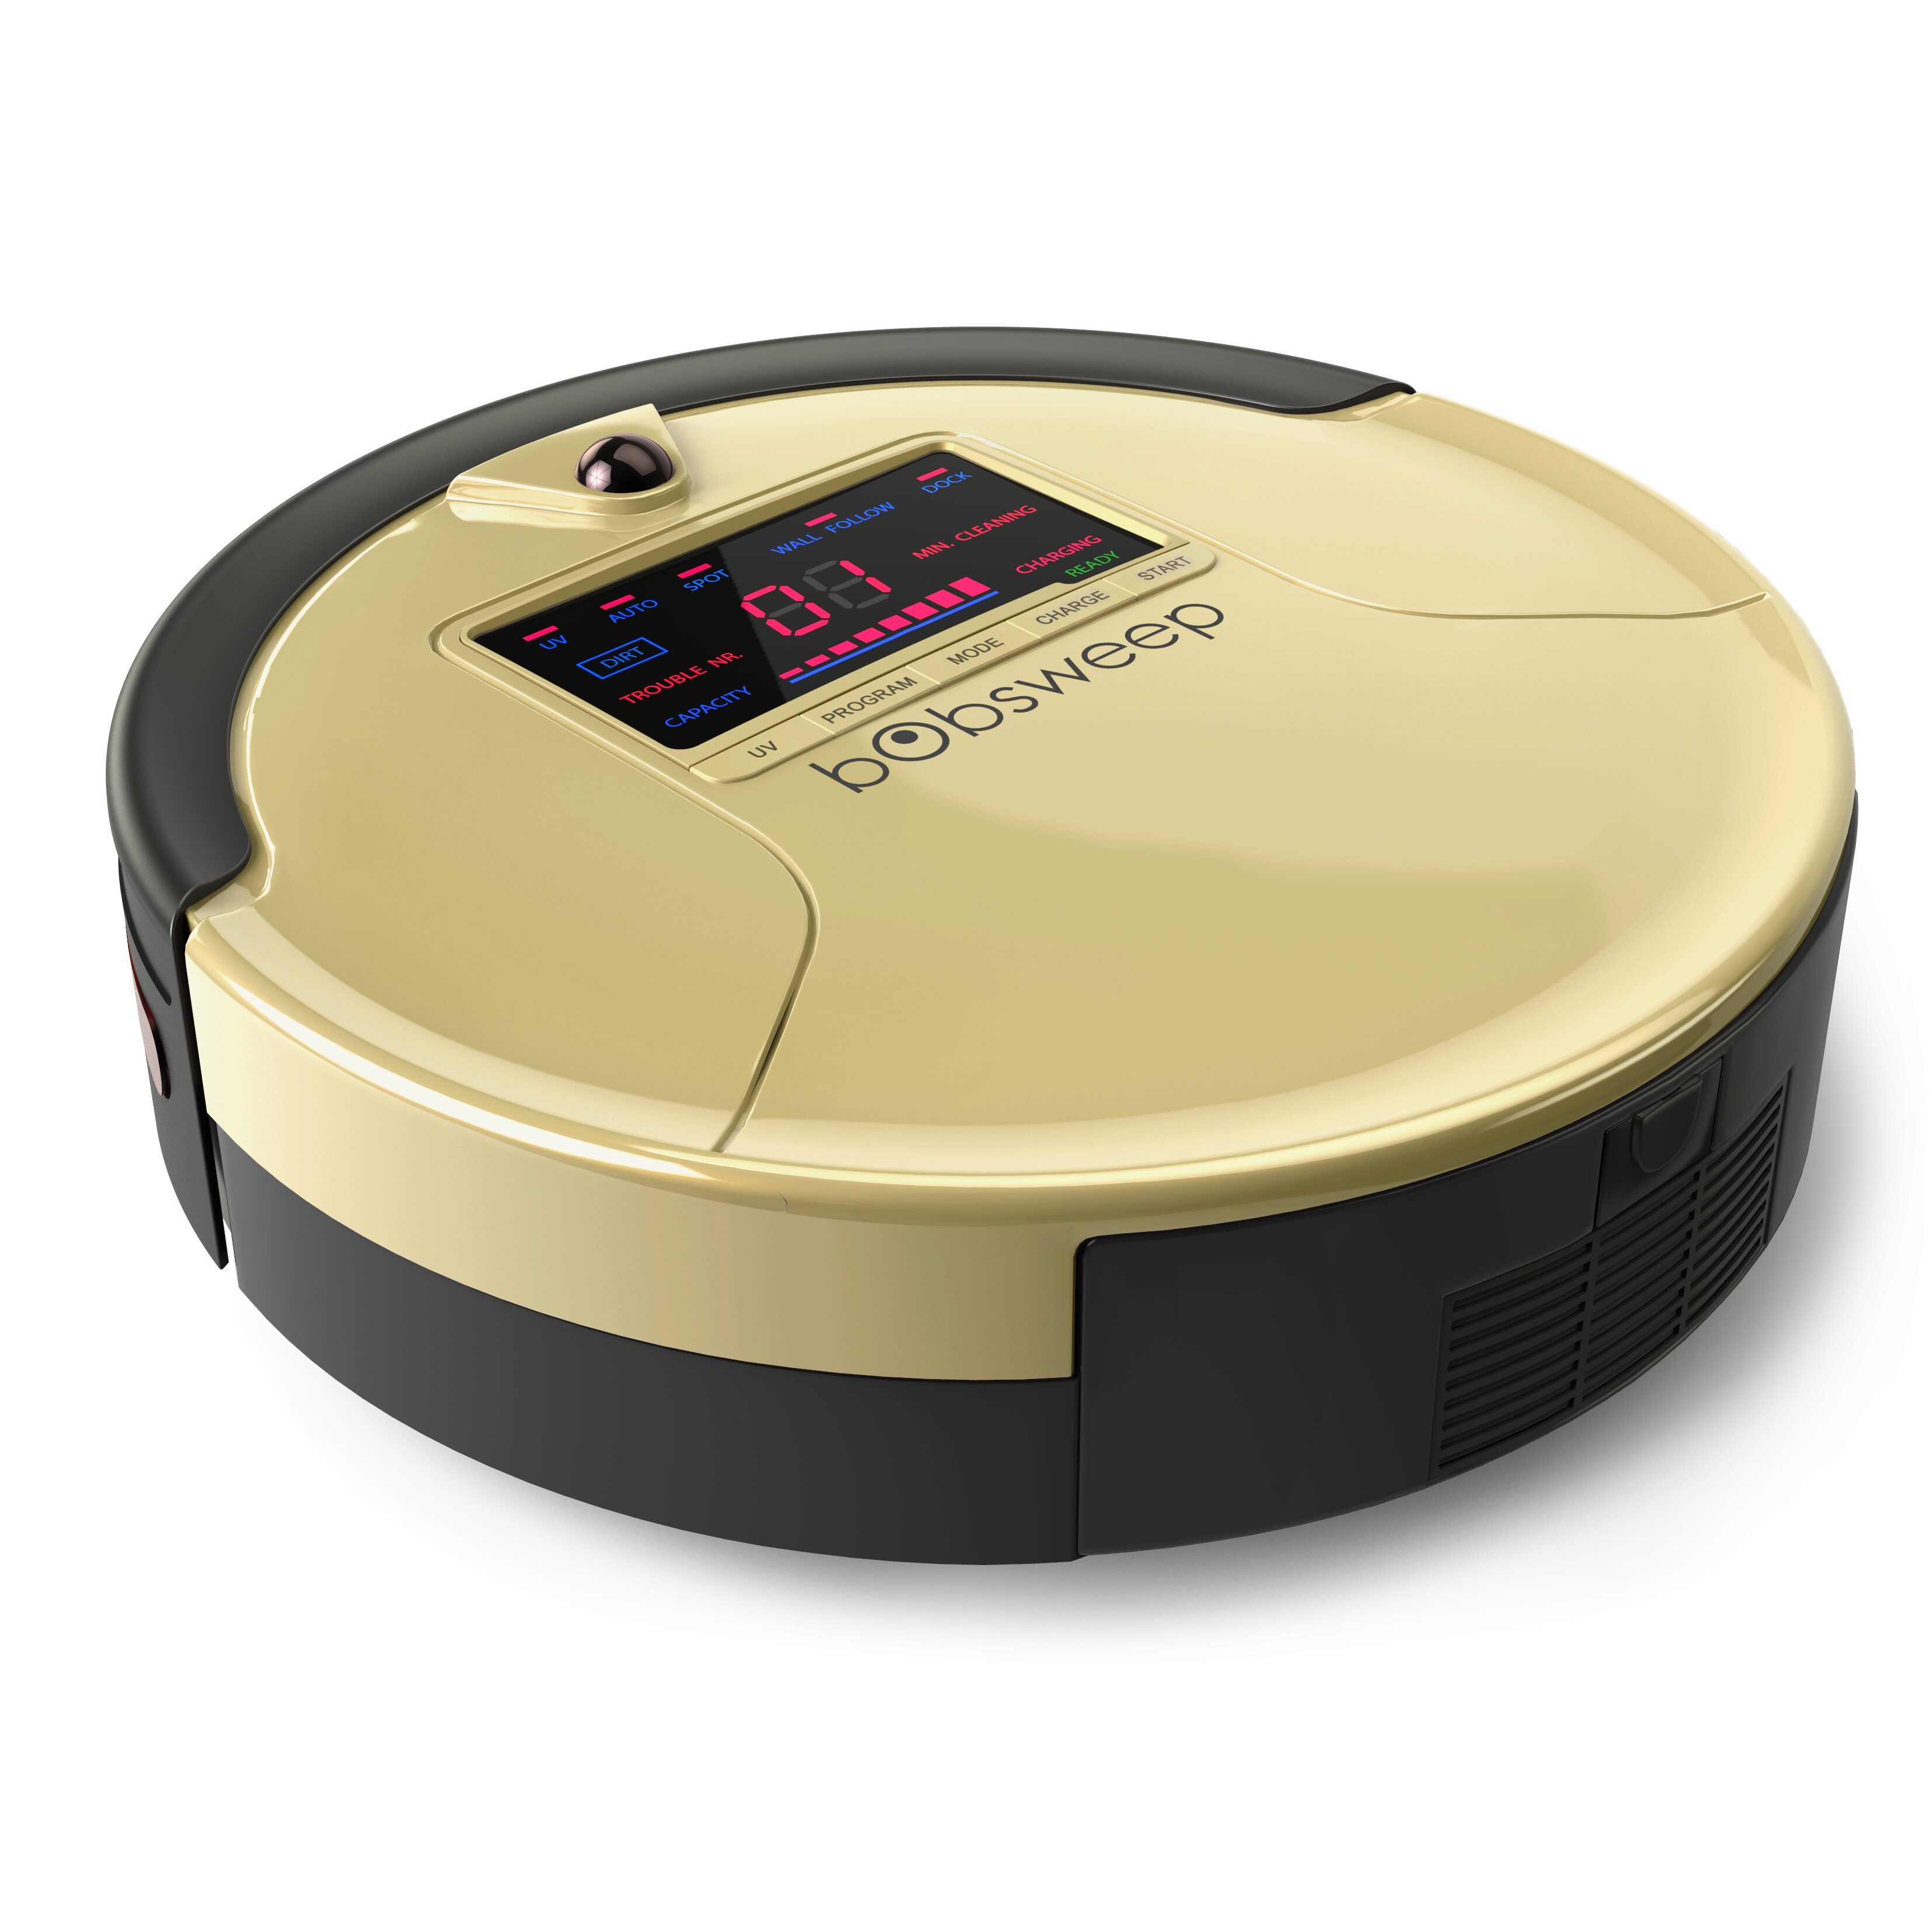 Bobsweep Pethair Robotic Vacuum Cleaner And Mop Amp Reviews